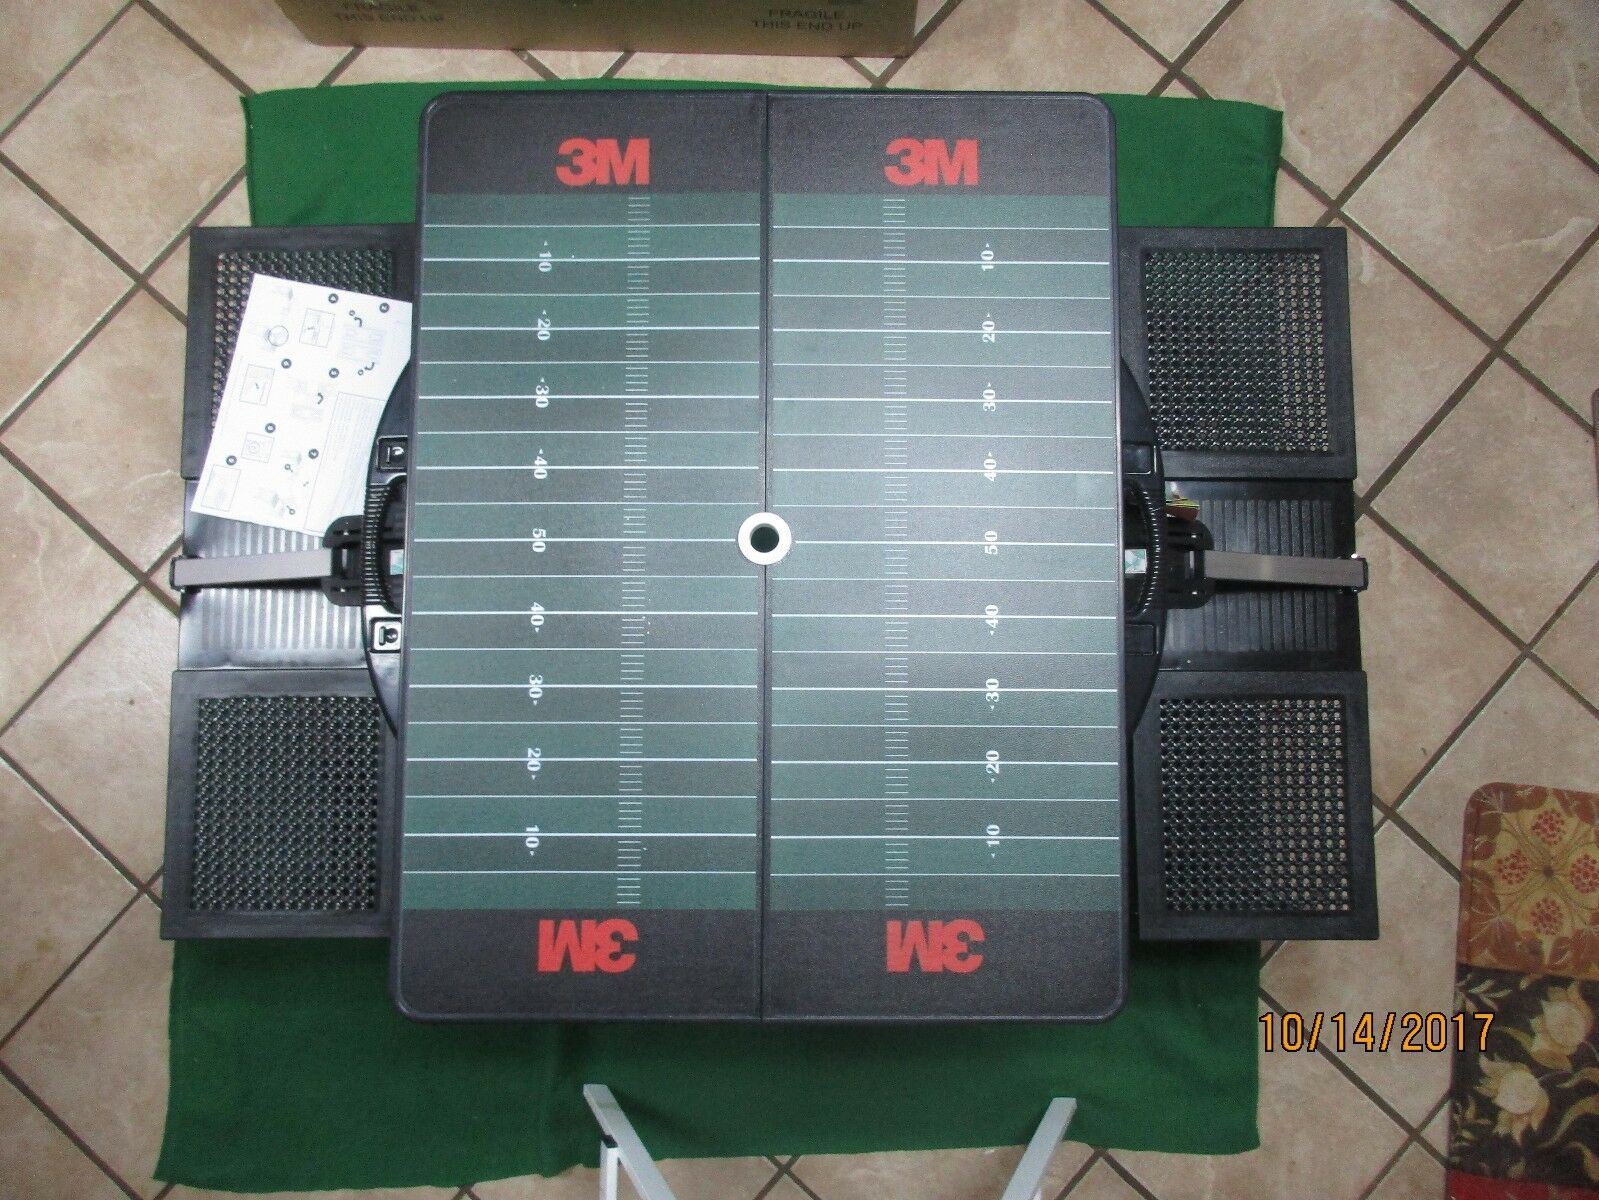 NEW PICNIC FOOTBALL TIME 3M FOOTBALL PICNIC FIELD PORTABLE FOLDING TABLE WITH SEATS 811-00-175 981742